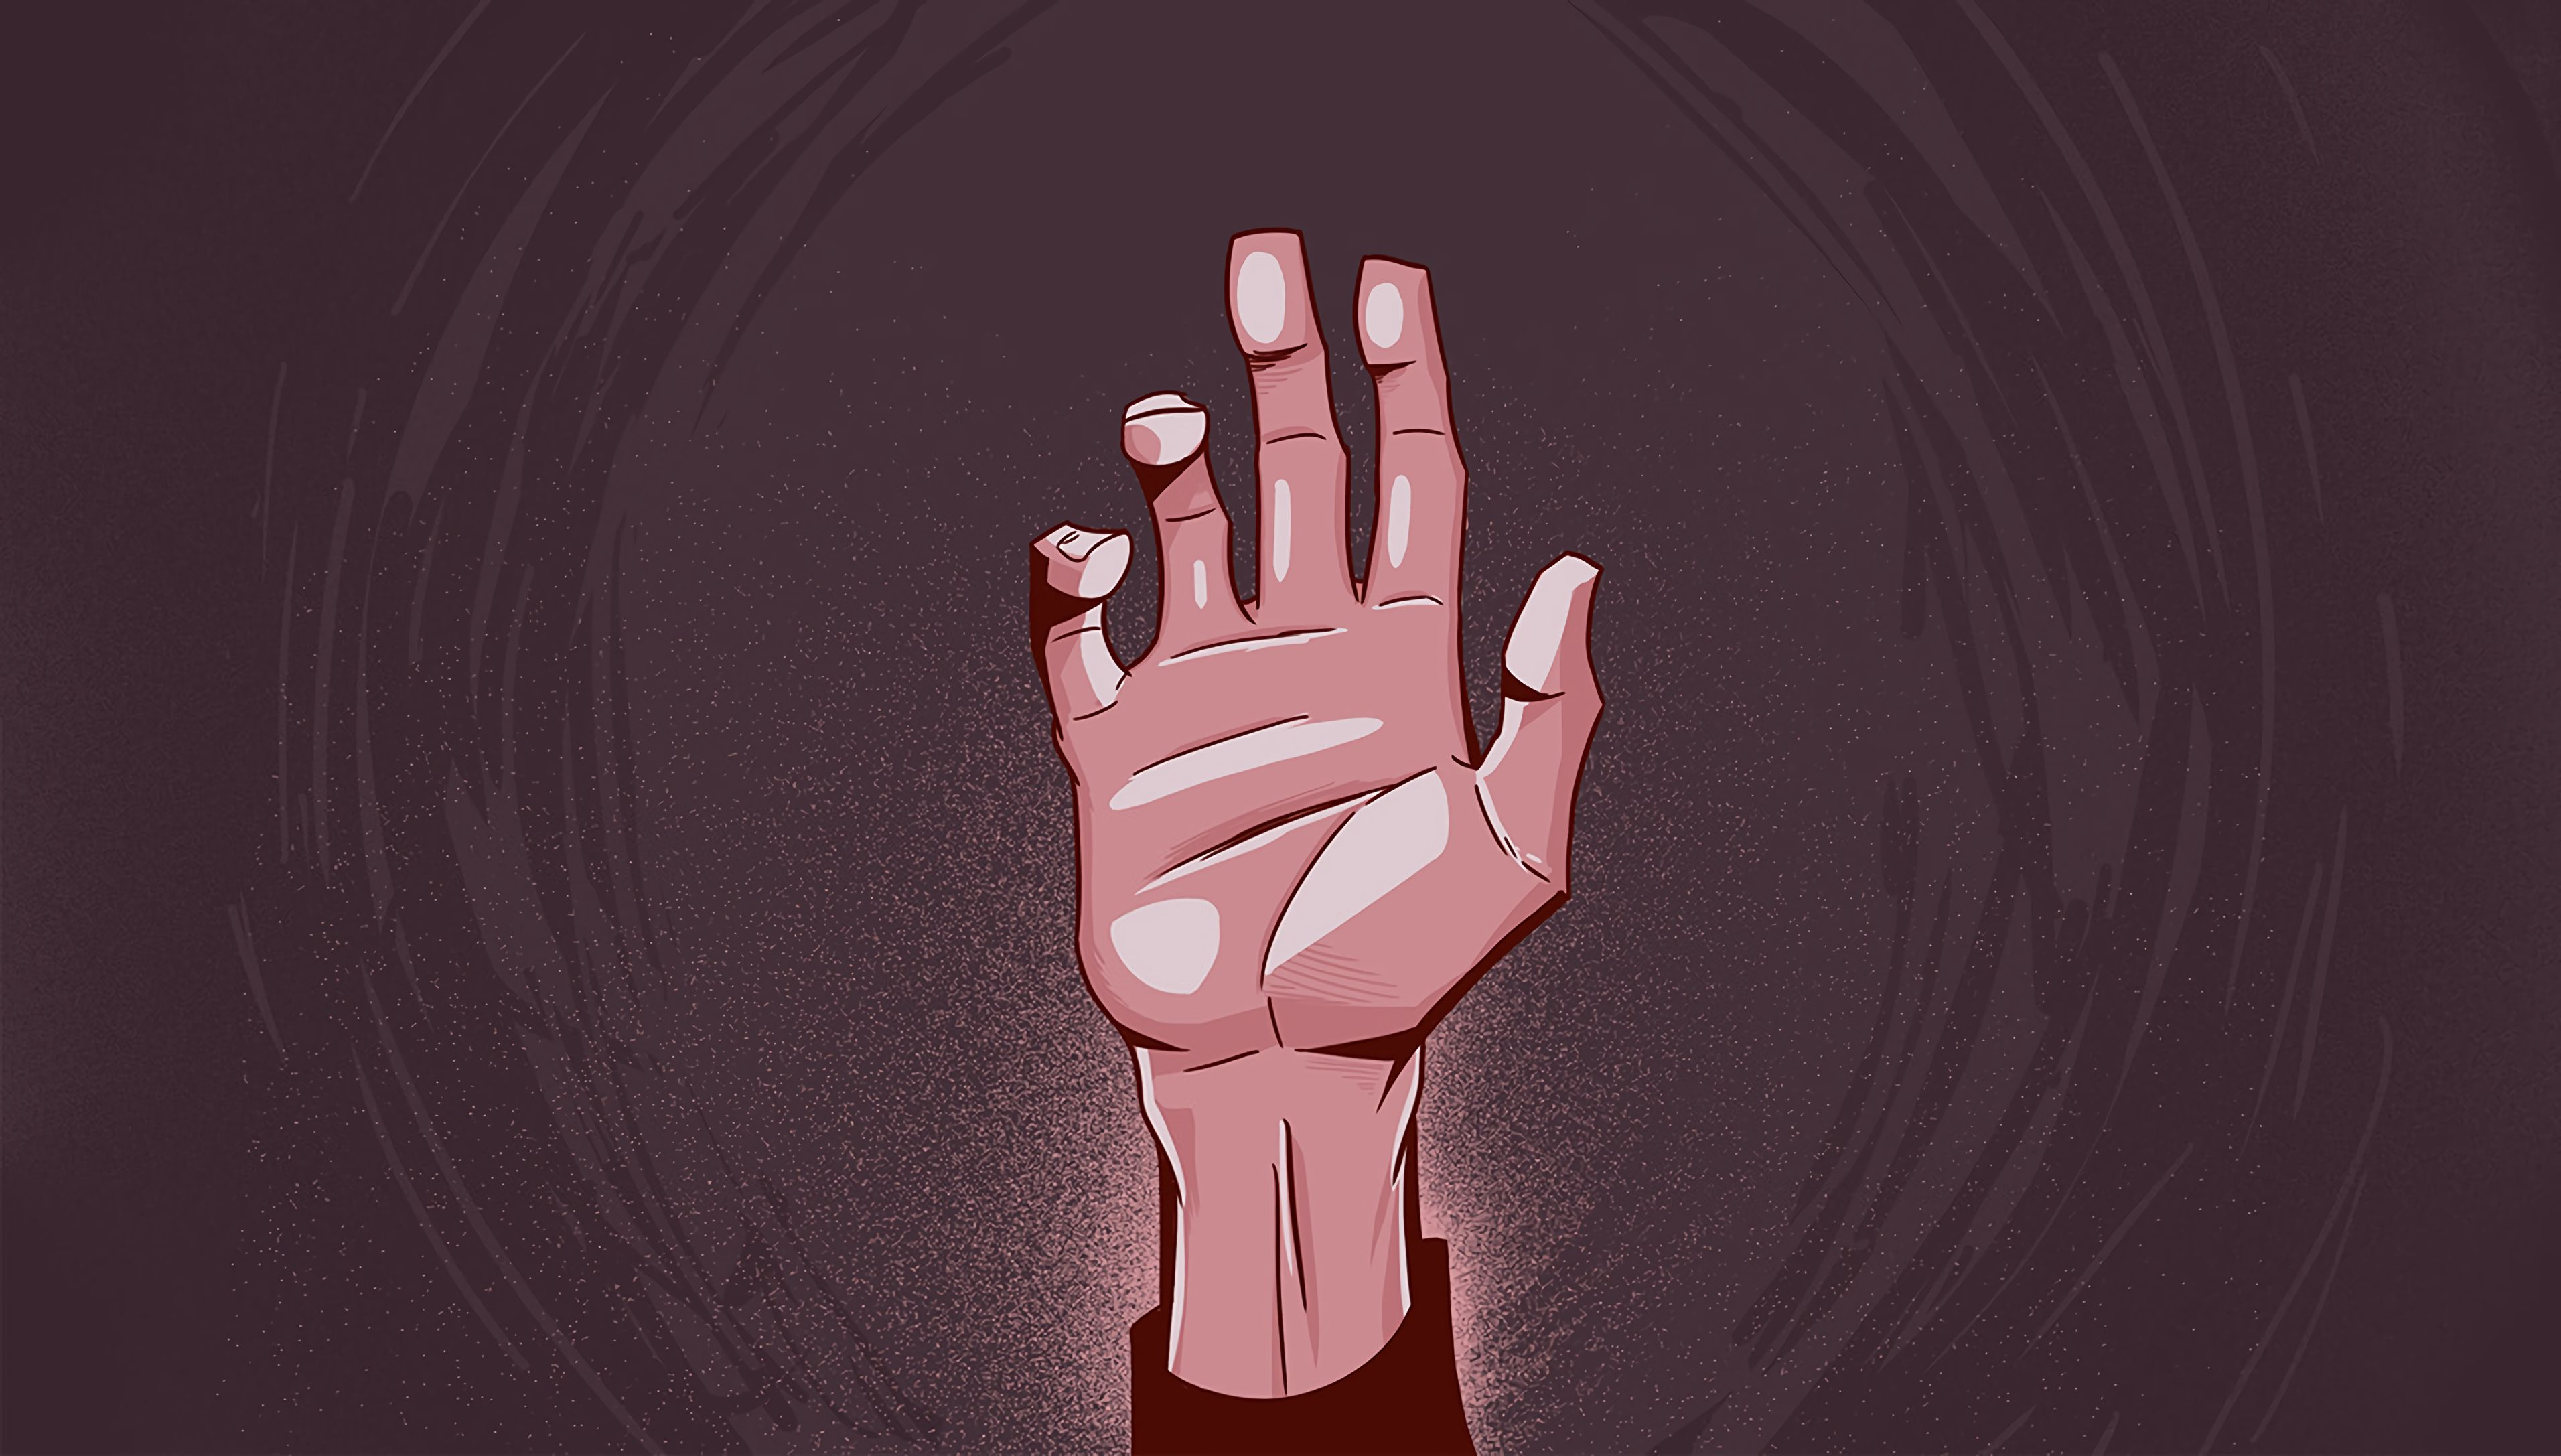 69392 Screensavers and Wallpapers Hand for phone. Download Hand, Palm, Fingers, Bent, Raised, Art pictures for free